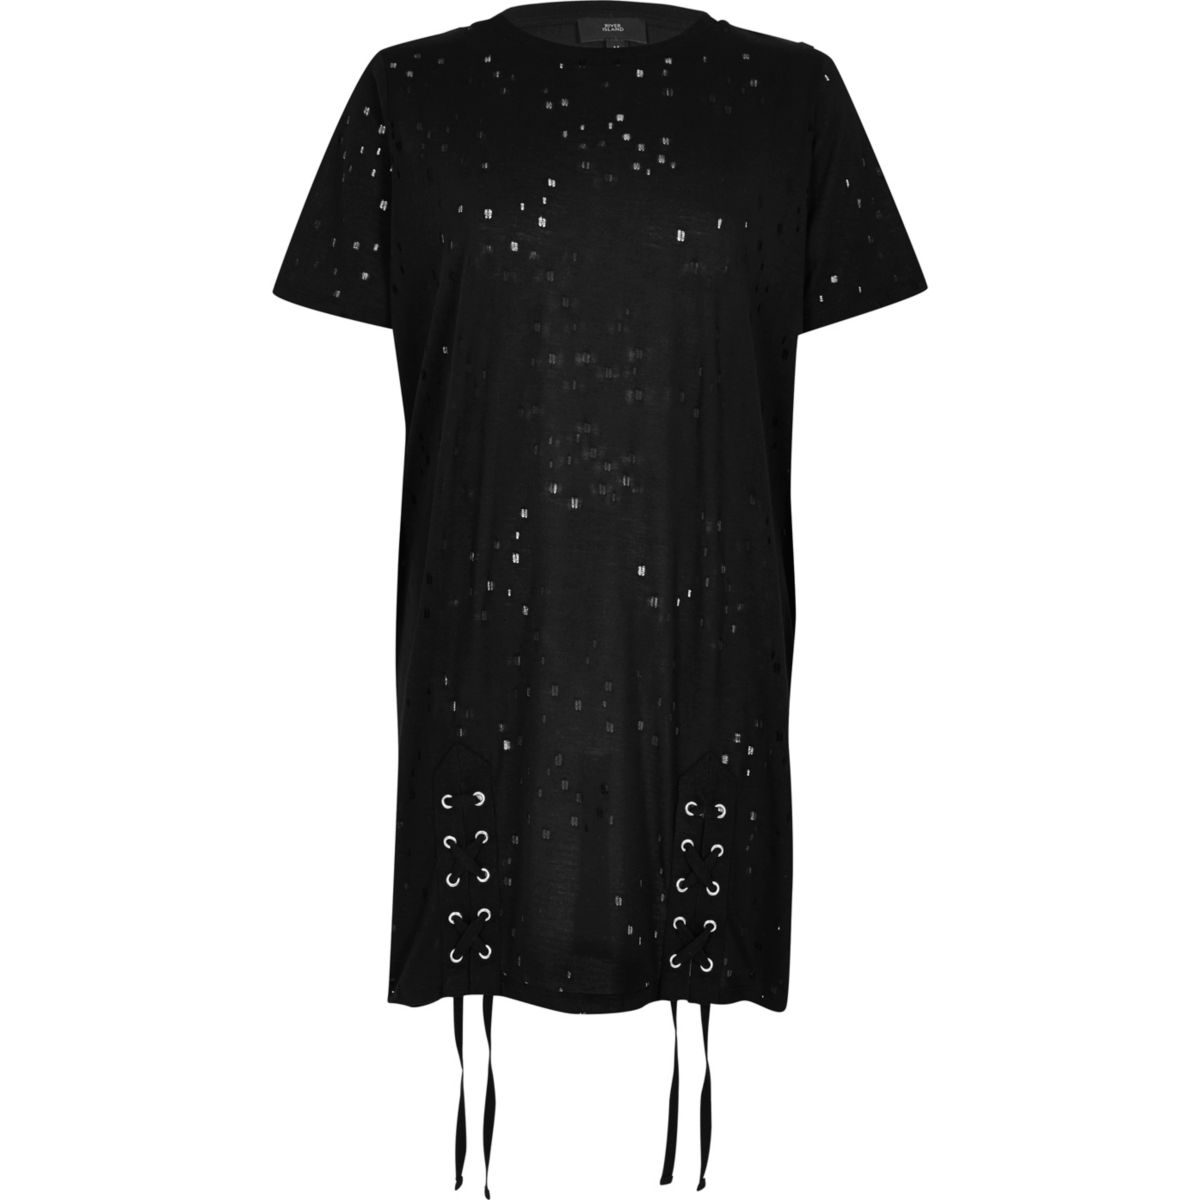 Black distressed lace up oversized T-shirt